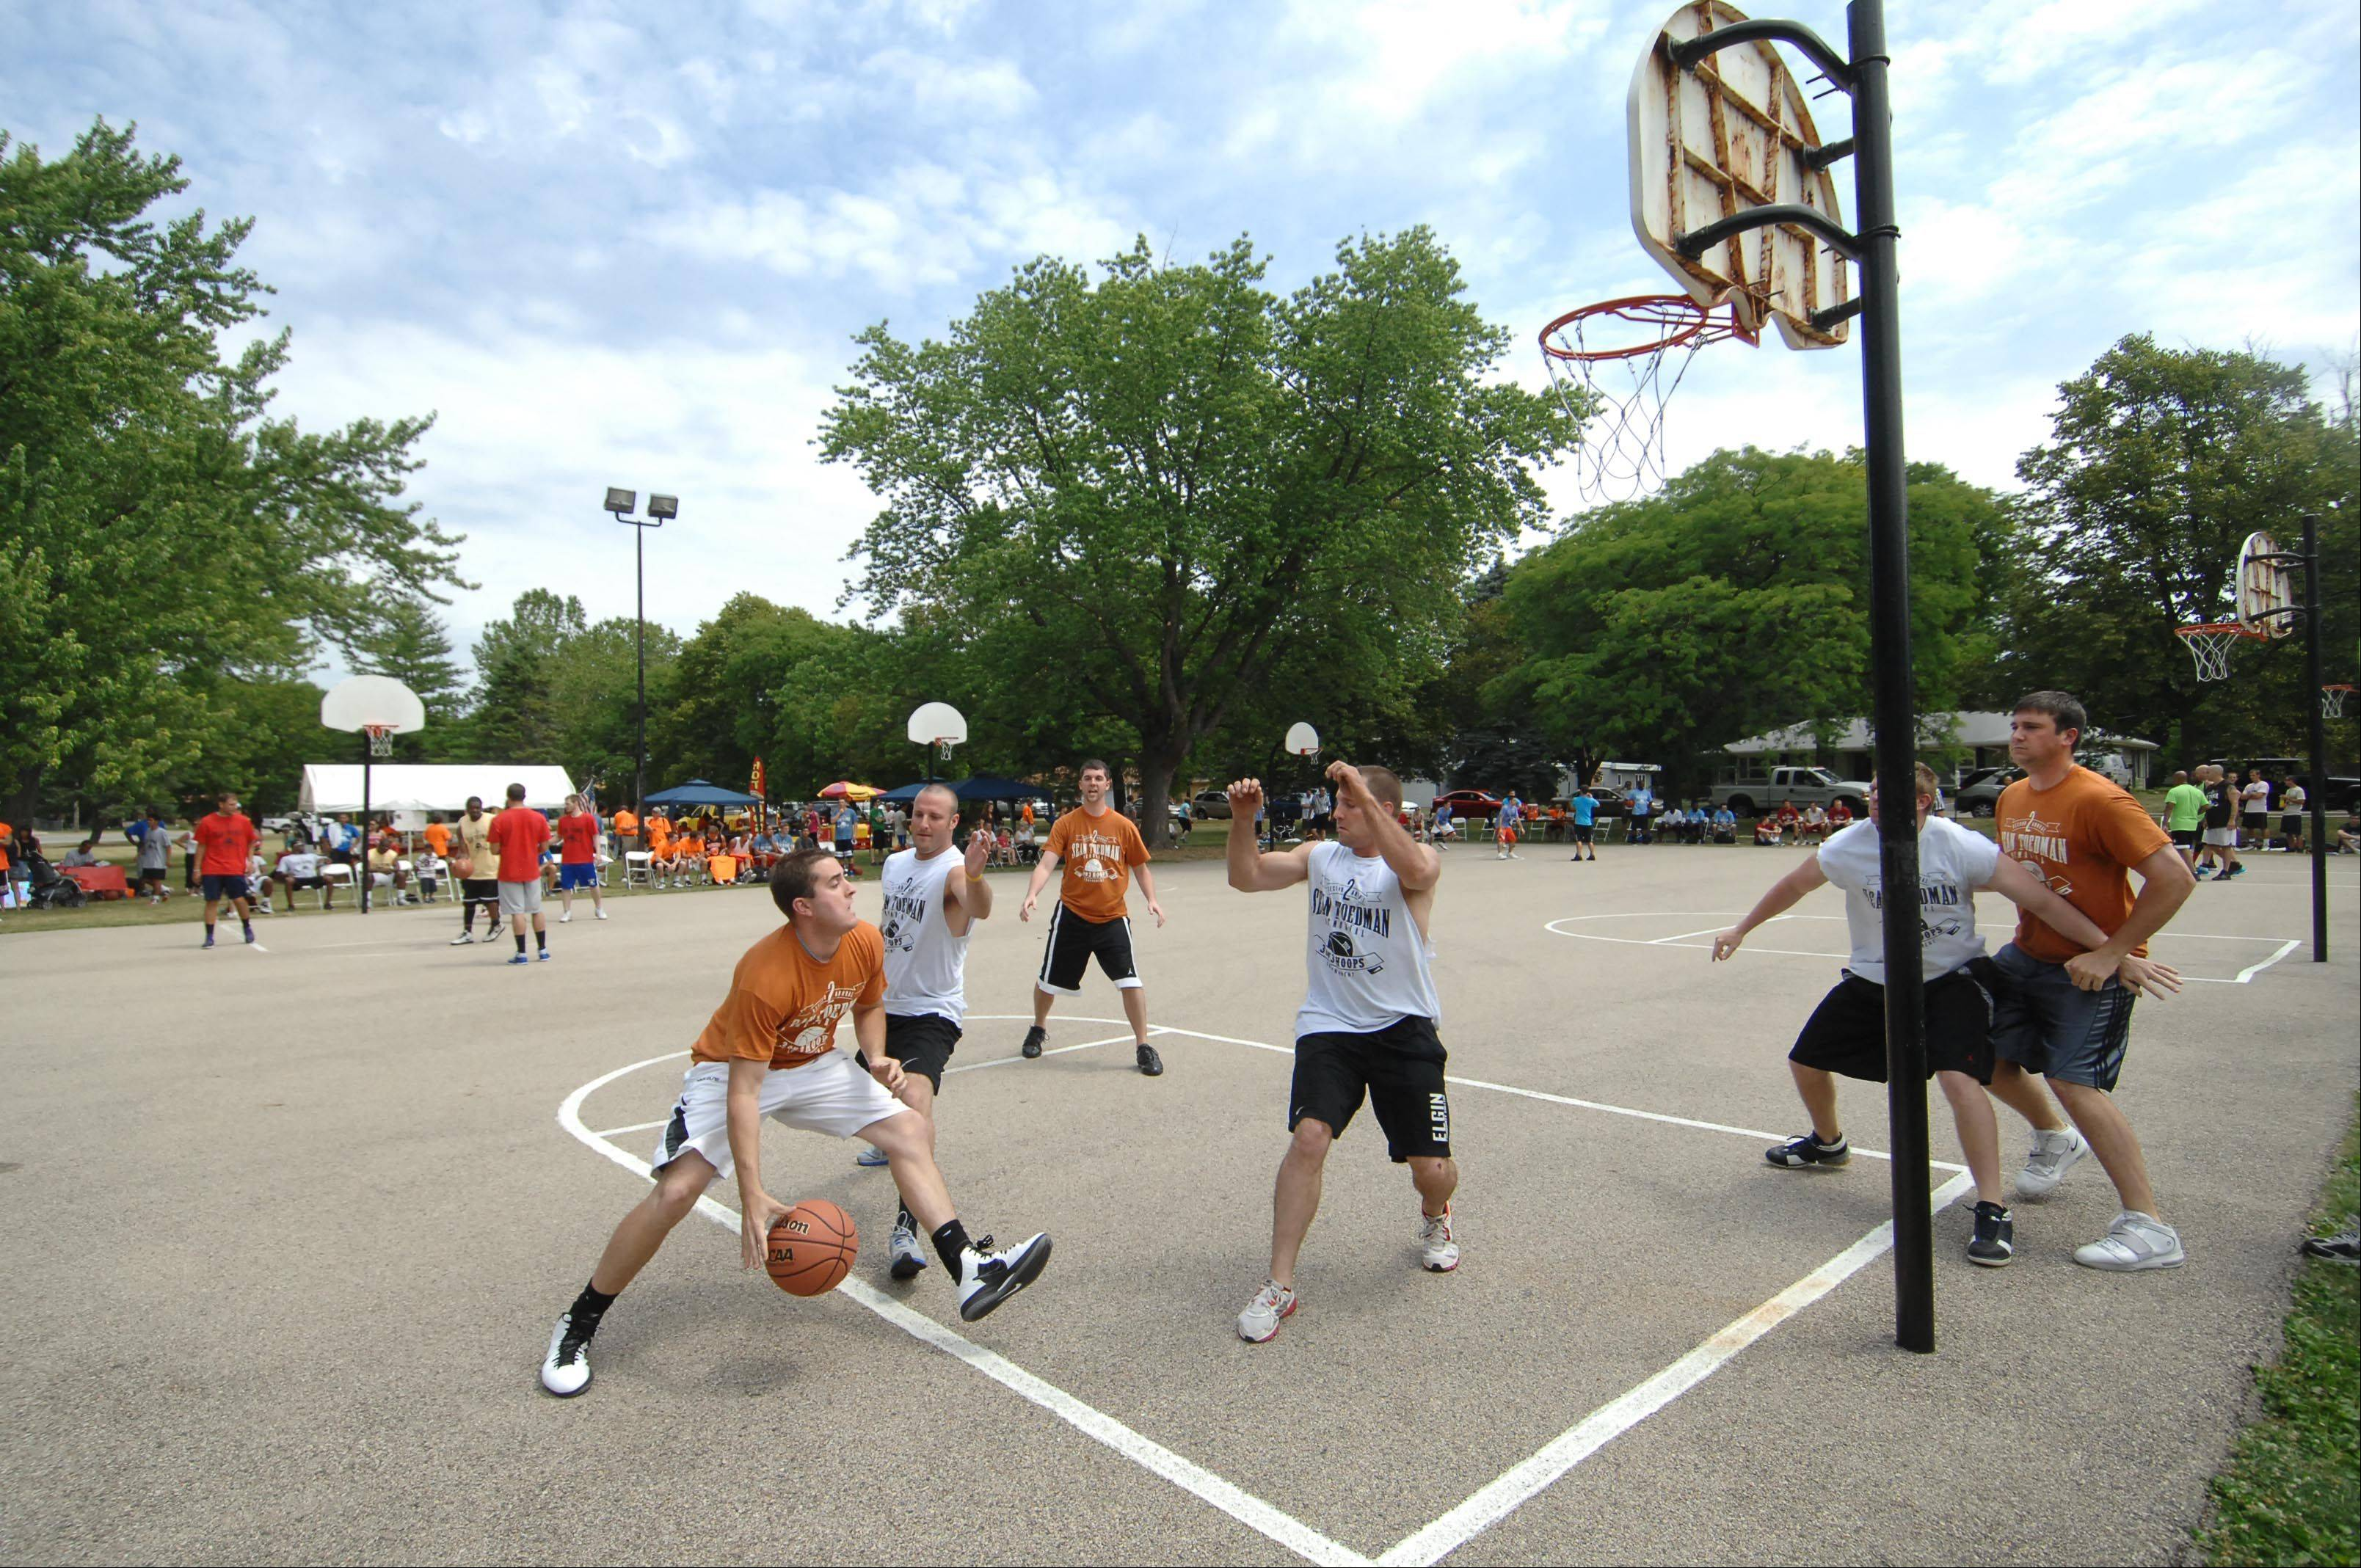 Some of the Fox Valley top current and former high school basketball players gathered in East Dundee on Sunday for the second annual Sean Toedman Memorial 3-on-3 Basketball Tournament. Teams competed and raised money to benefit St. Jude Children's Research Hospital in Memphis.